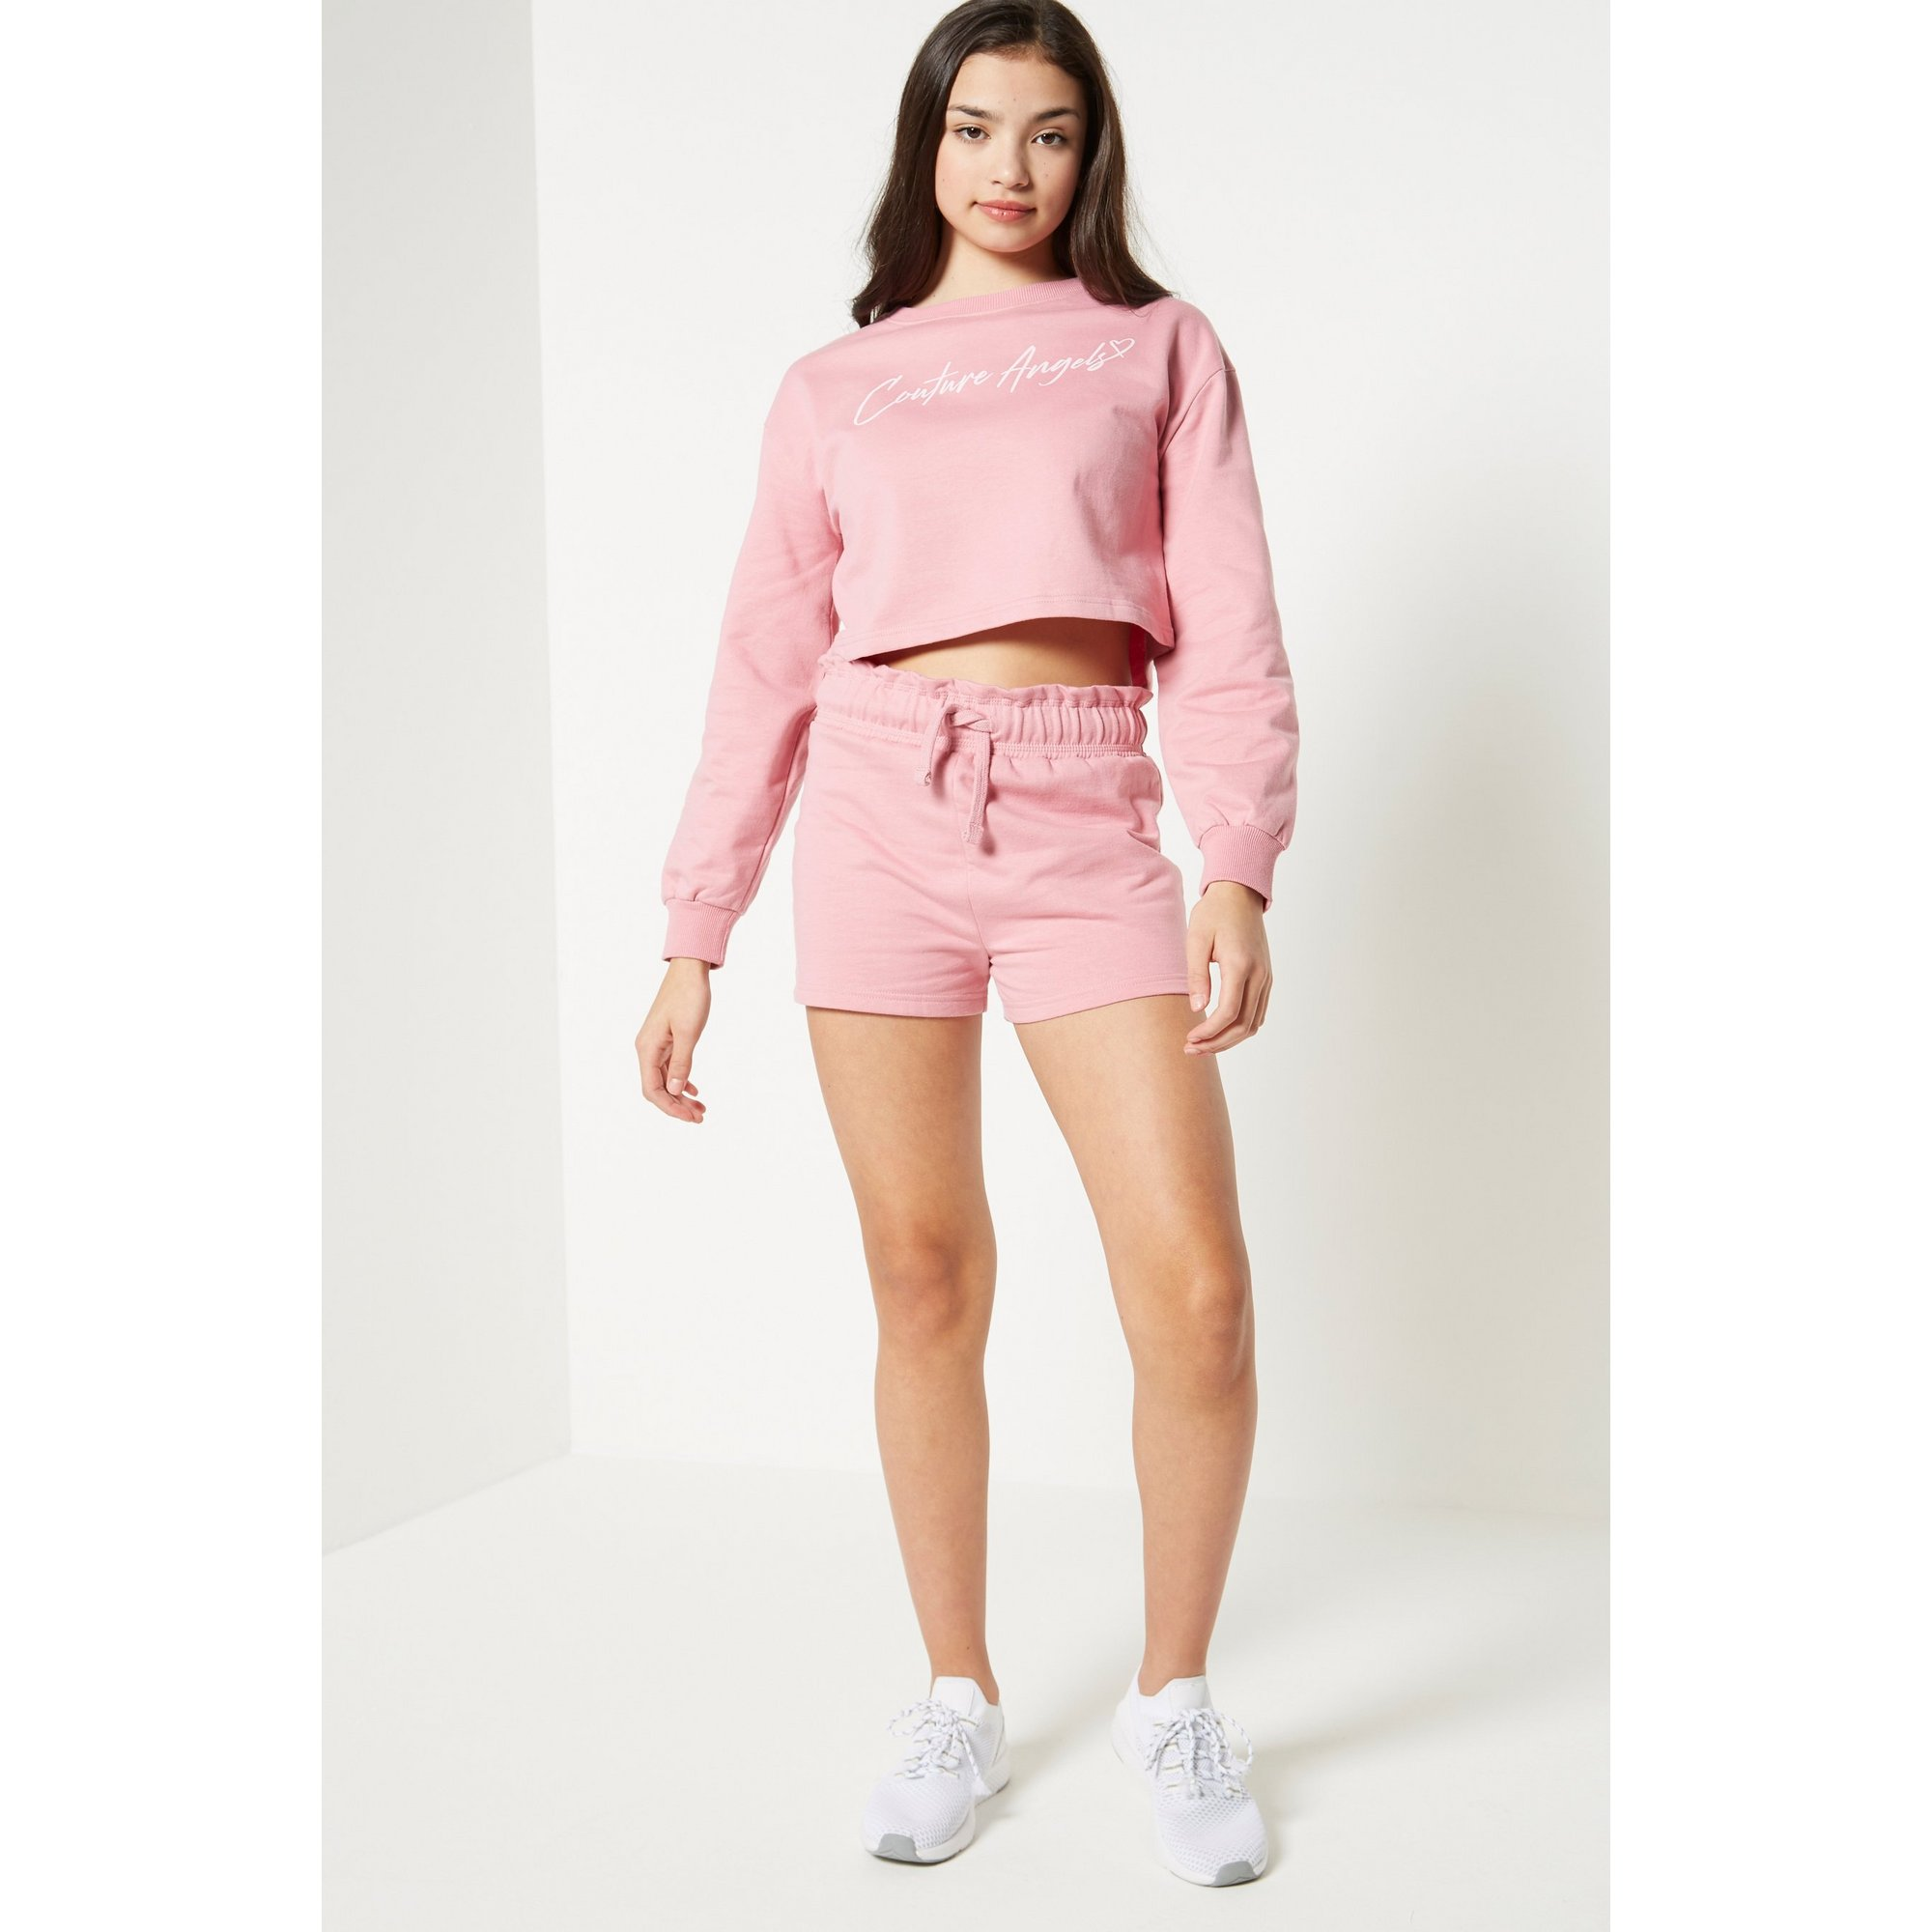 Image of Couture Angels 2-Piece Blush Cropped Sweatshirt and Shorts Set